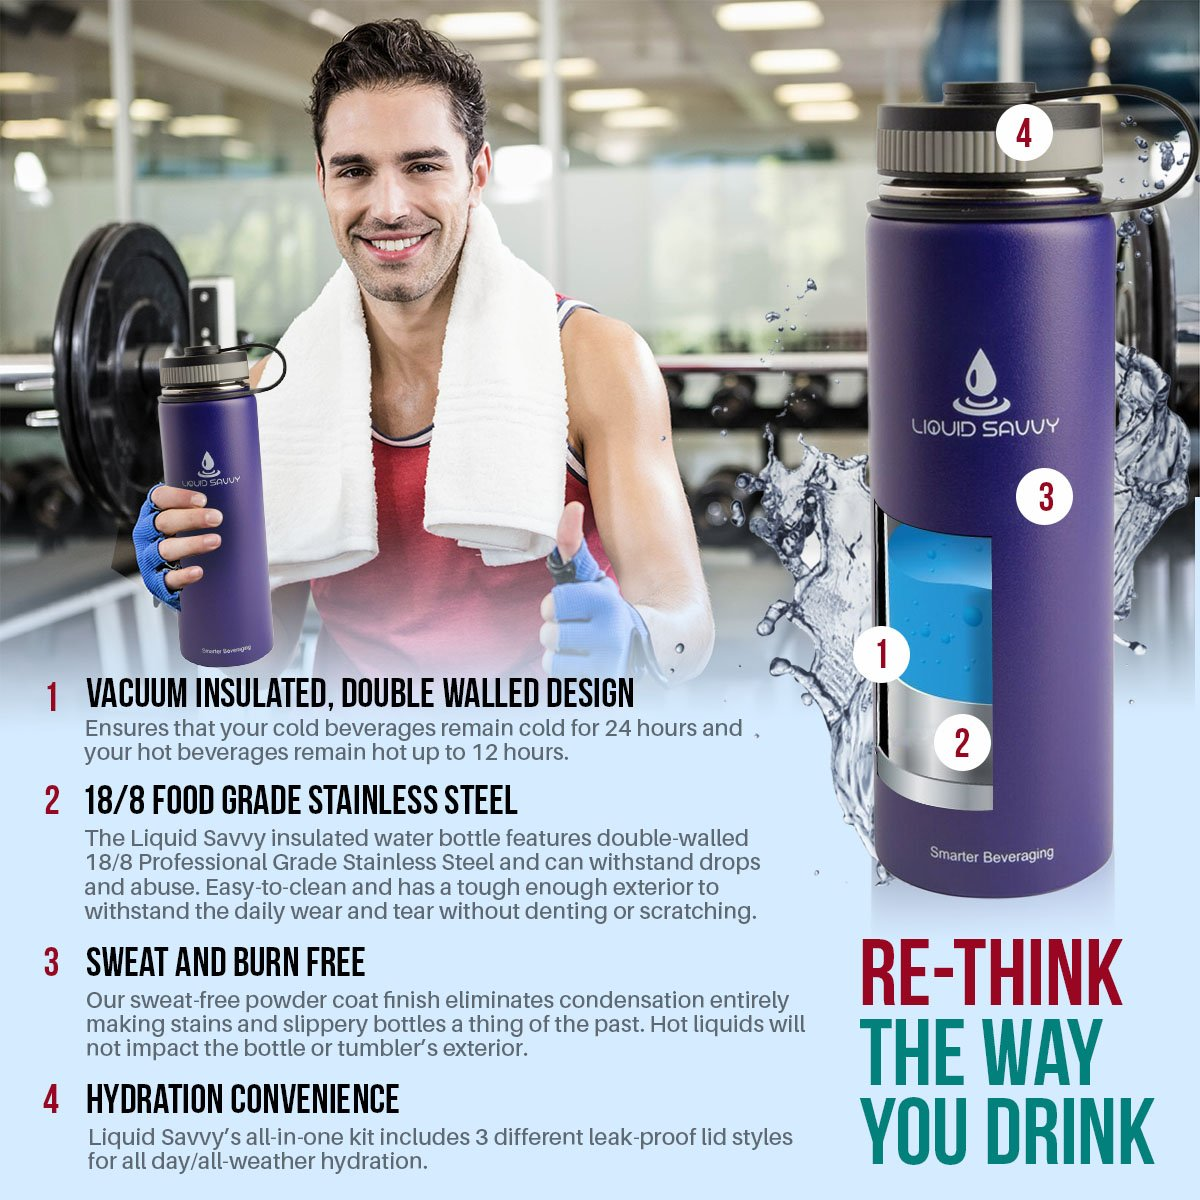 Liquid Savvy 24oz Insulated Water Bottle with 3 lids - Stainless Steel, Wide Mouth Double Walled Vacuum Insulated Bottle for Hot and Cold Beverages (Blue) by Liquid Savvy (Image #4)